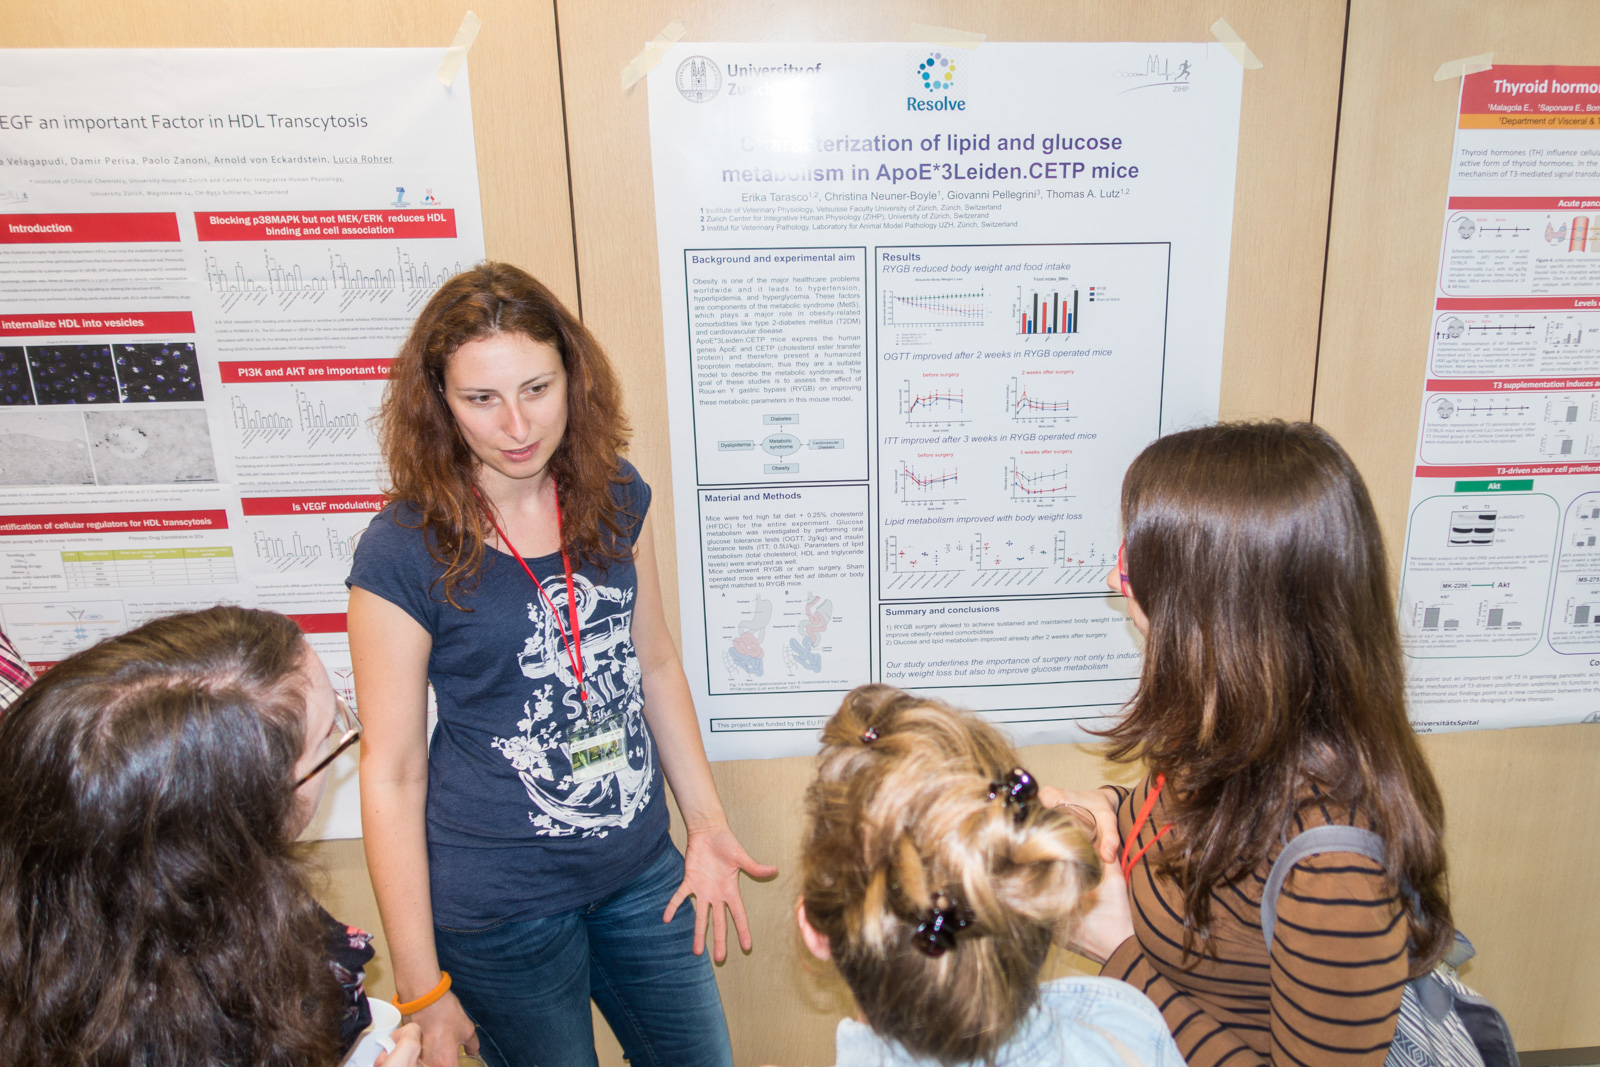 <p>More impressions from the poster session</p>